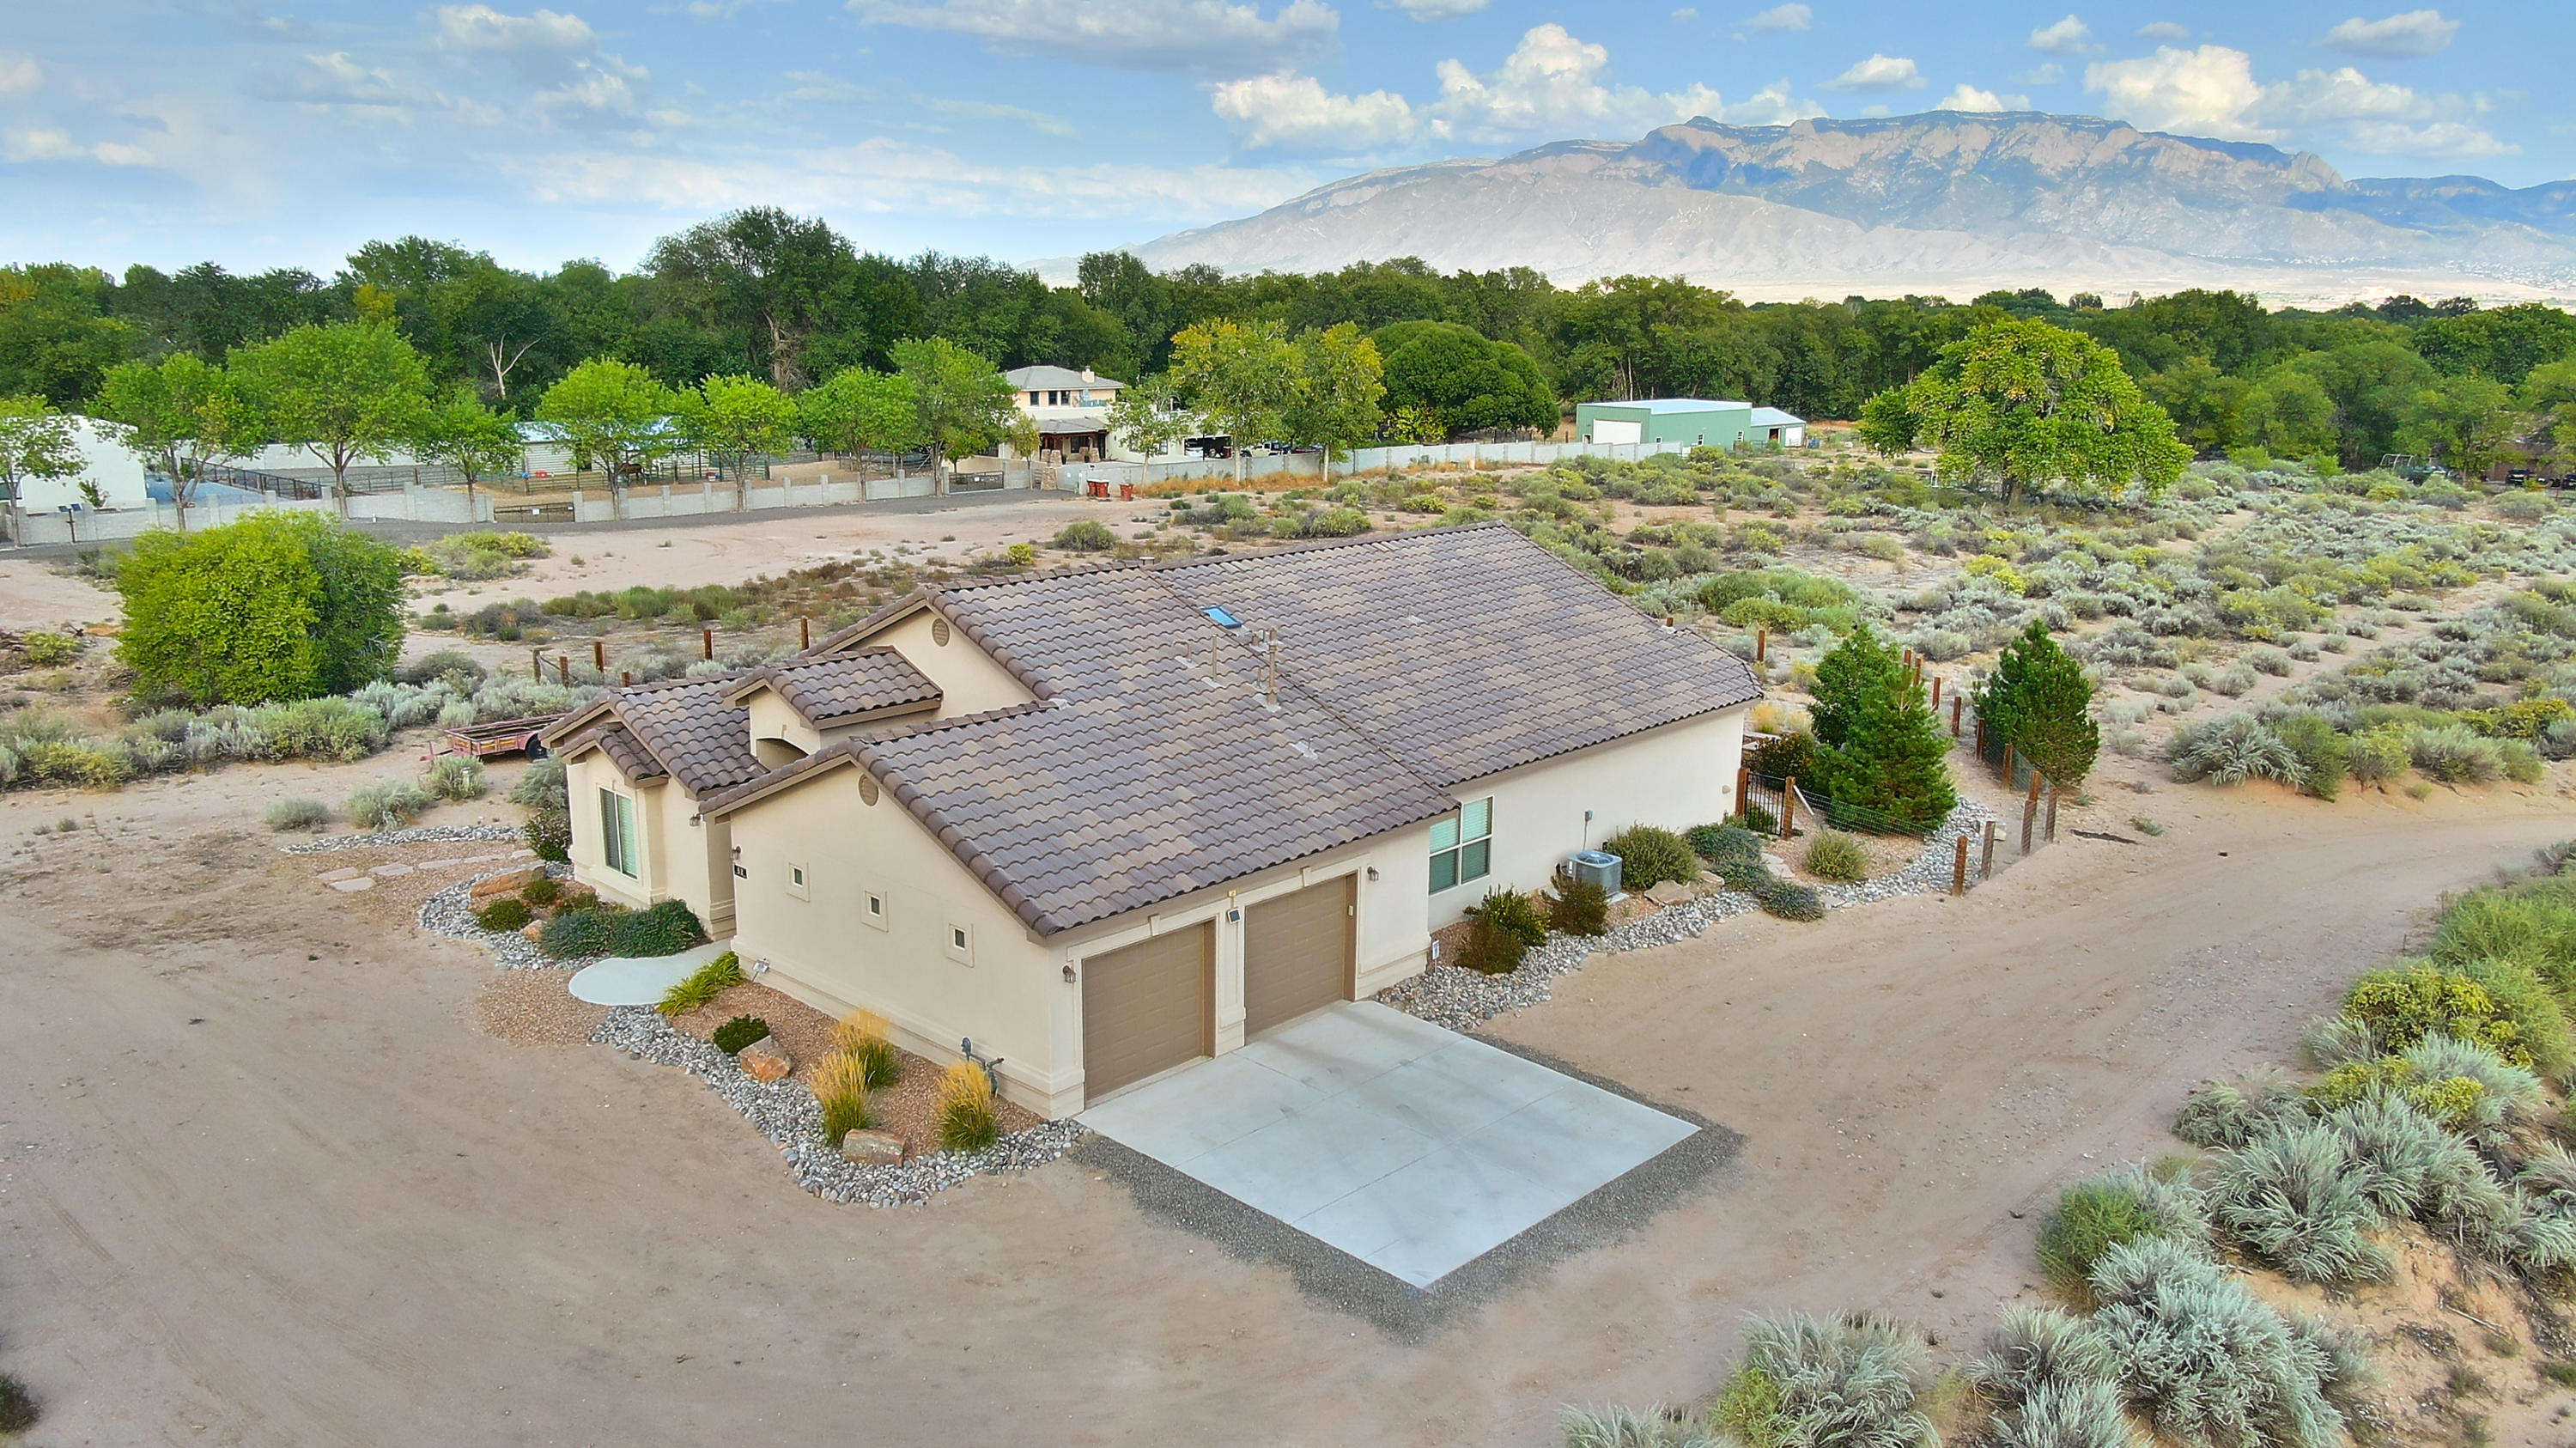 Rare Corrales property on over 2 acres with amazing mountain views! Originally designed to be a horse property, this location now has the potential to be anything you want. The likenew home was built in 2017 by Summertree Homes. Modern amenities include the open floorplan with raised ceilings and lots of natural light, tile floors throughout, elegant white kitchen with high end appliances, water softener, ref. A/C and so much more. The home is set up for future solar power if owner desires. This functional floorplan leaves no wasted space. The outdoor living possibilities are endless beginning with gas fire pit. If you are looking for the charm and views Corrales has to offer, with a low maintenance newer home, look no further.